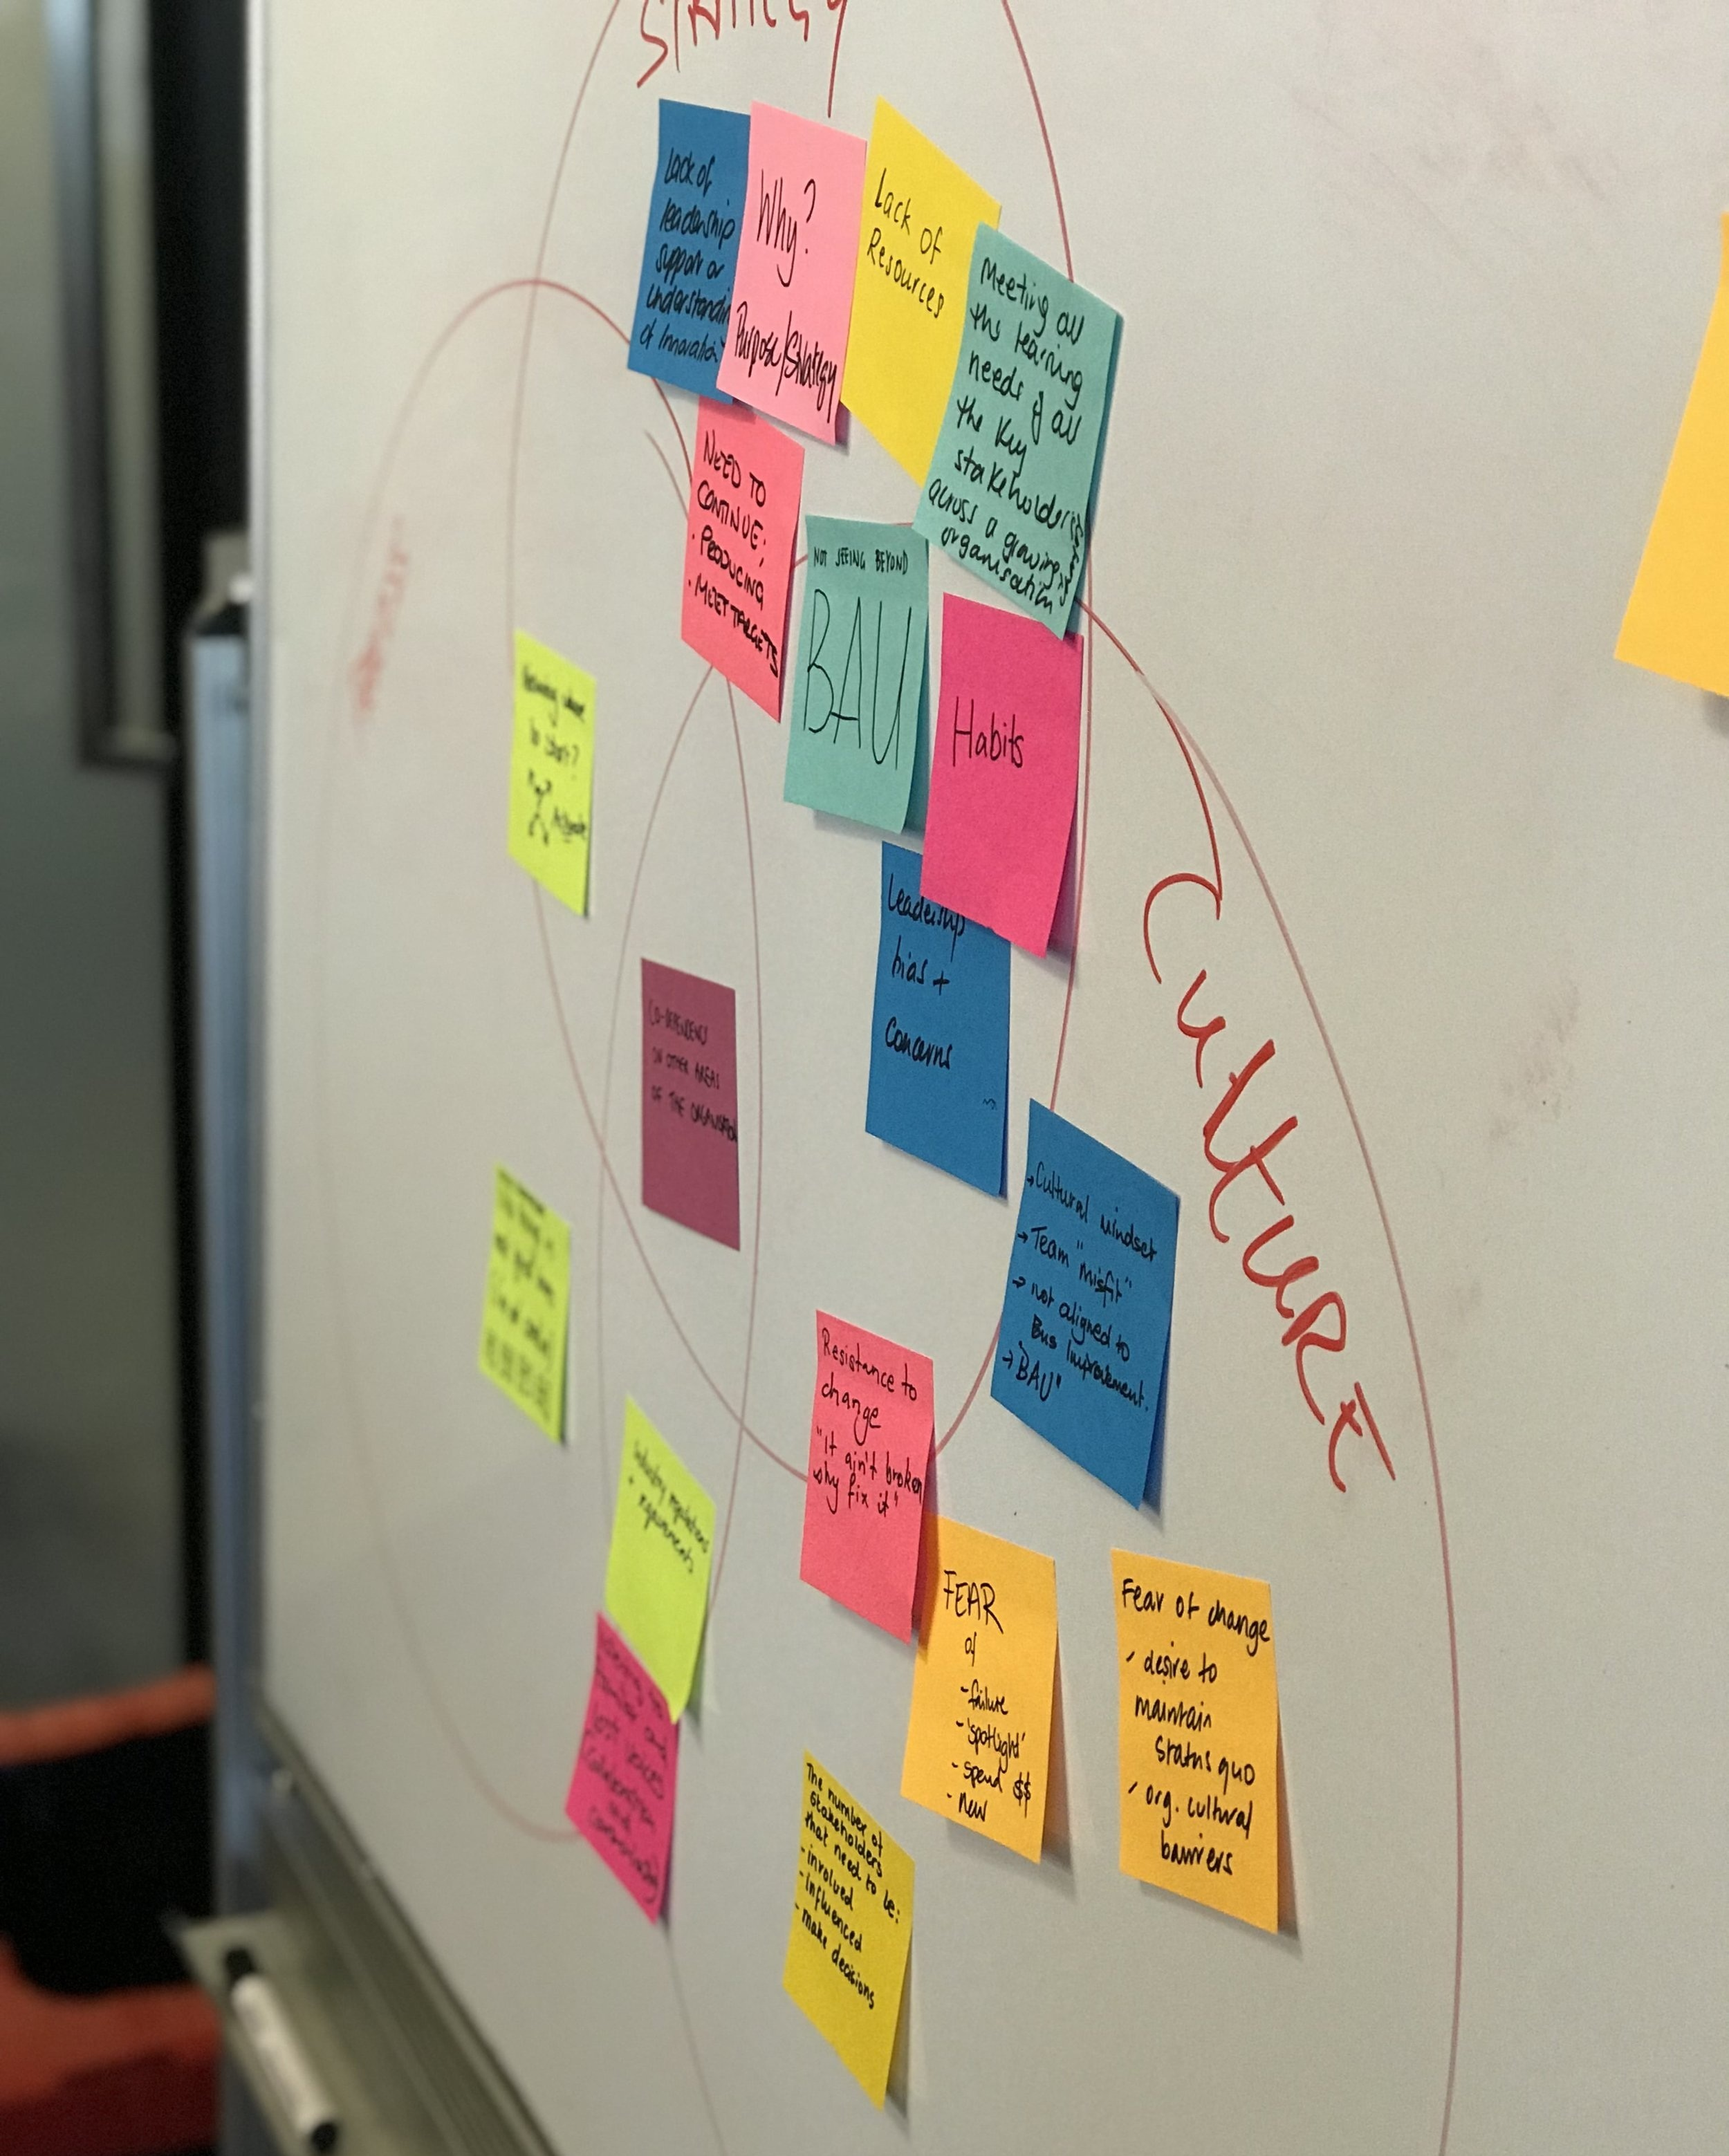 Design Thinking: Working through barriers to innovation